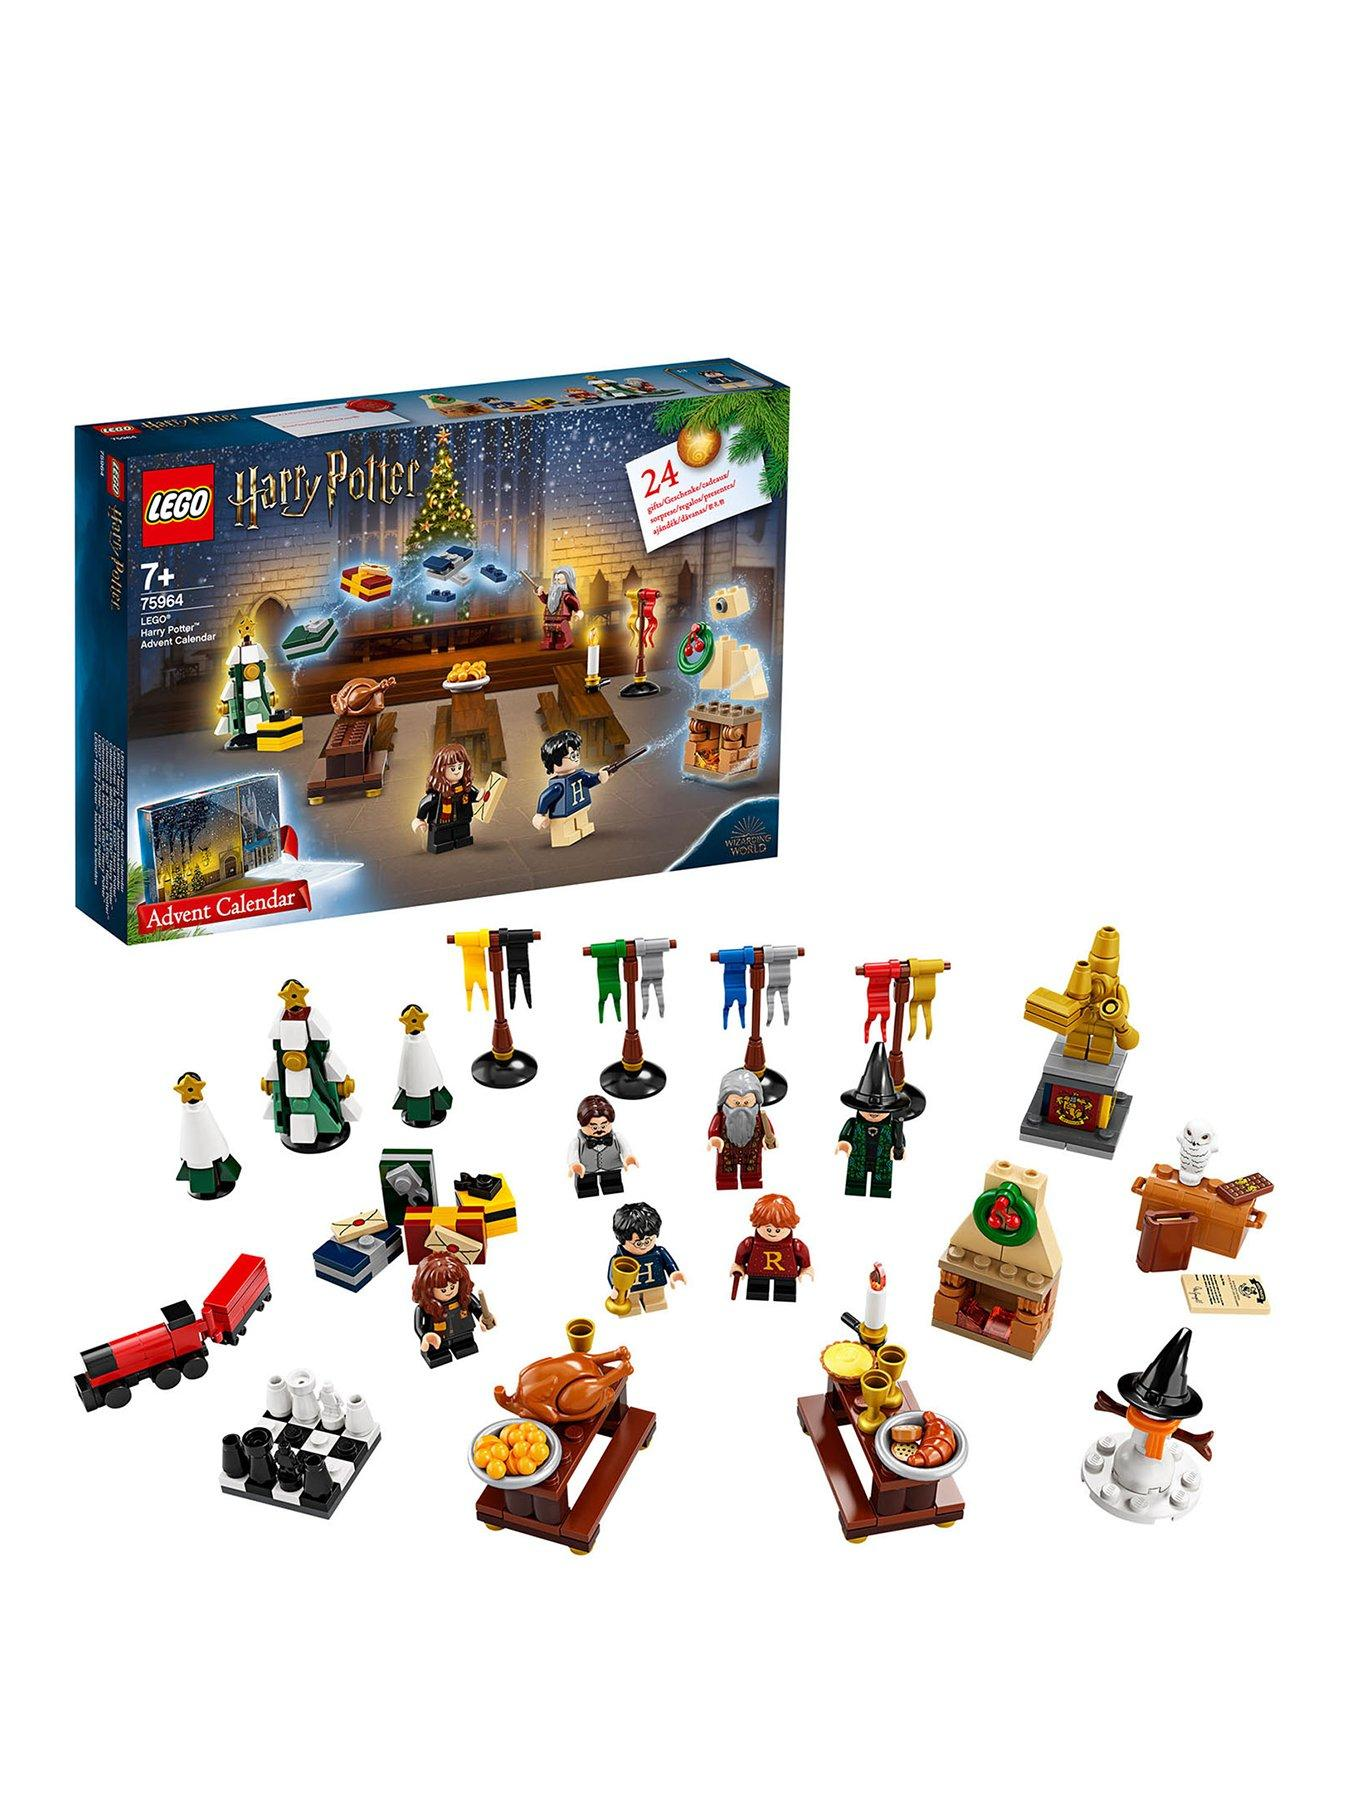 75964 Advent Calendar 2019 with Minifigures